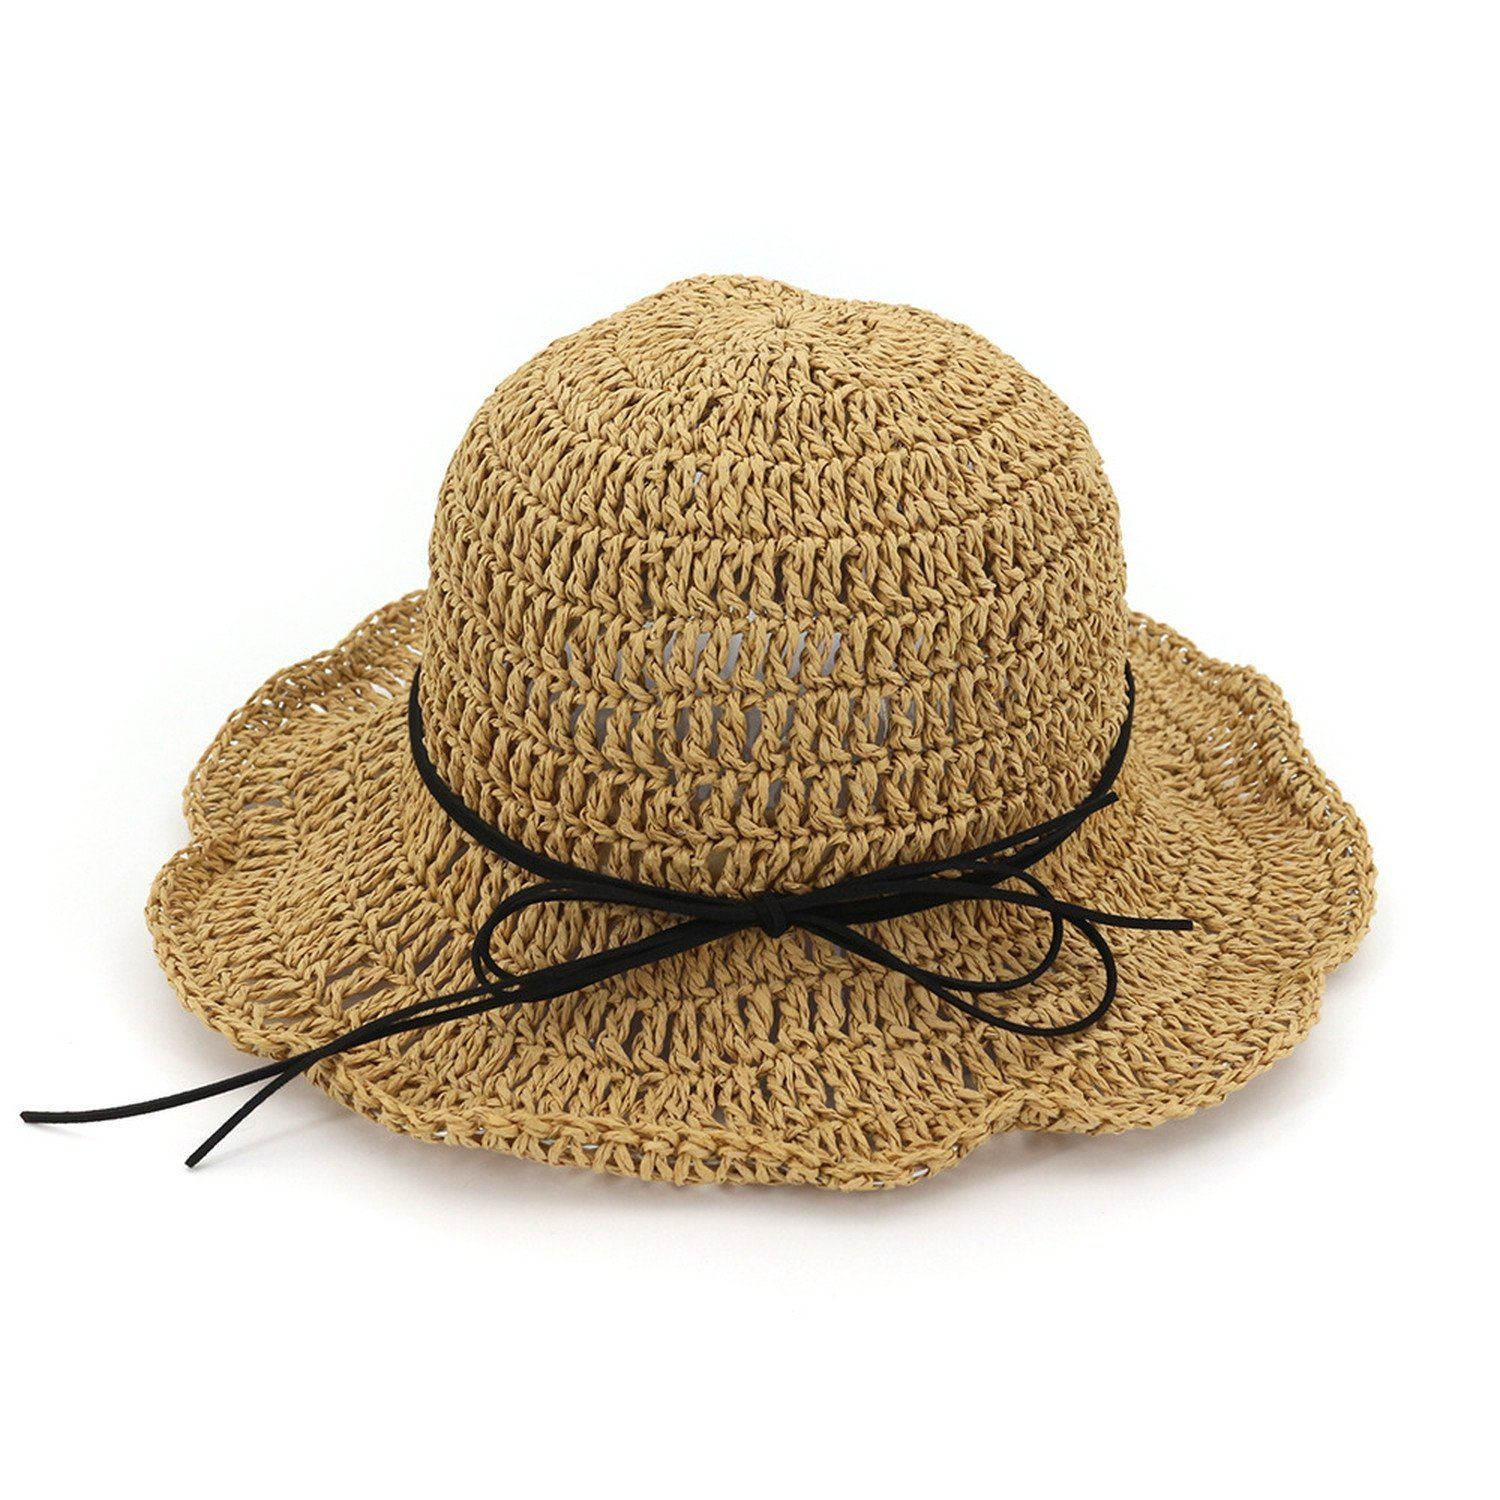 Spring and summer new parent-child straw hat travel manual beach hat children bow sun shade sunscreen female,Khaki,Children's section